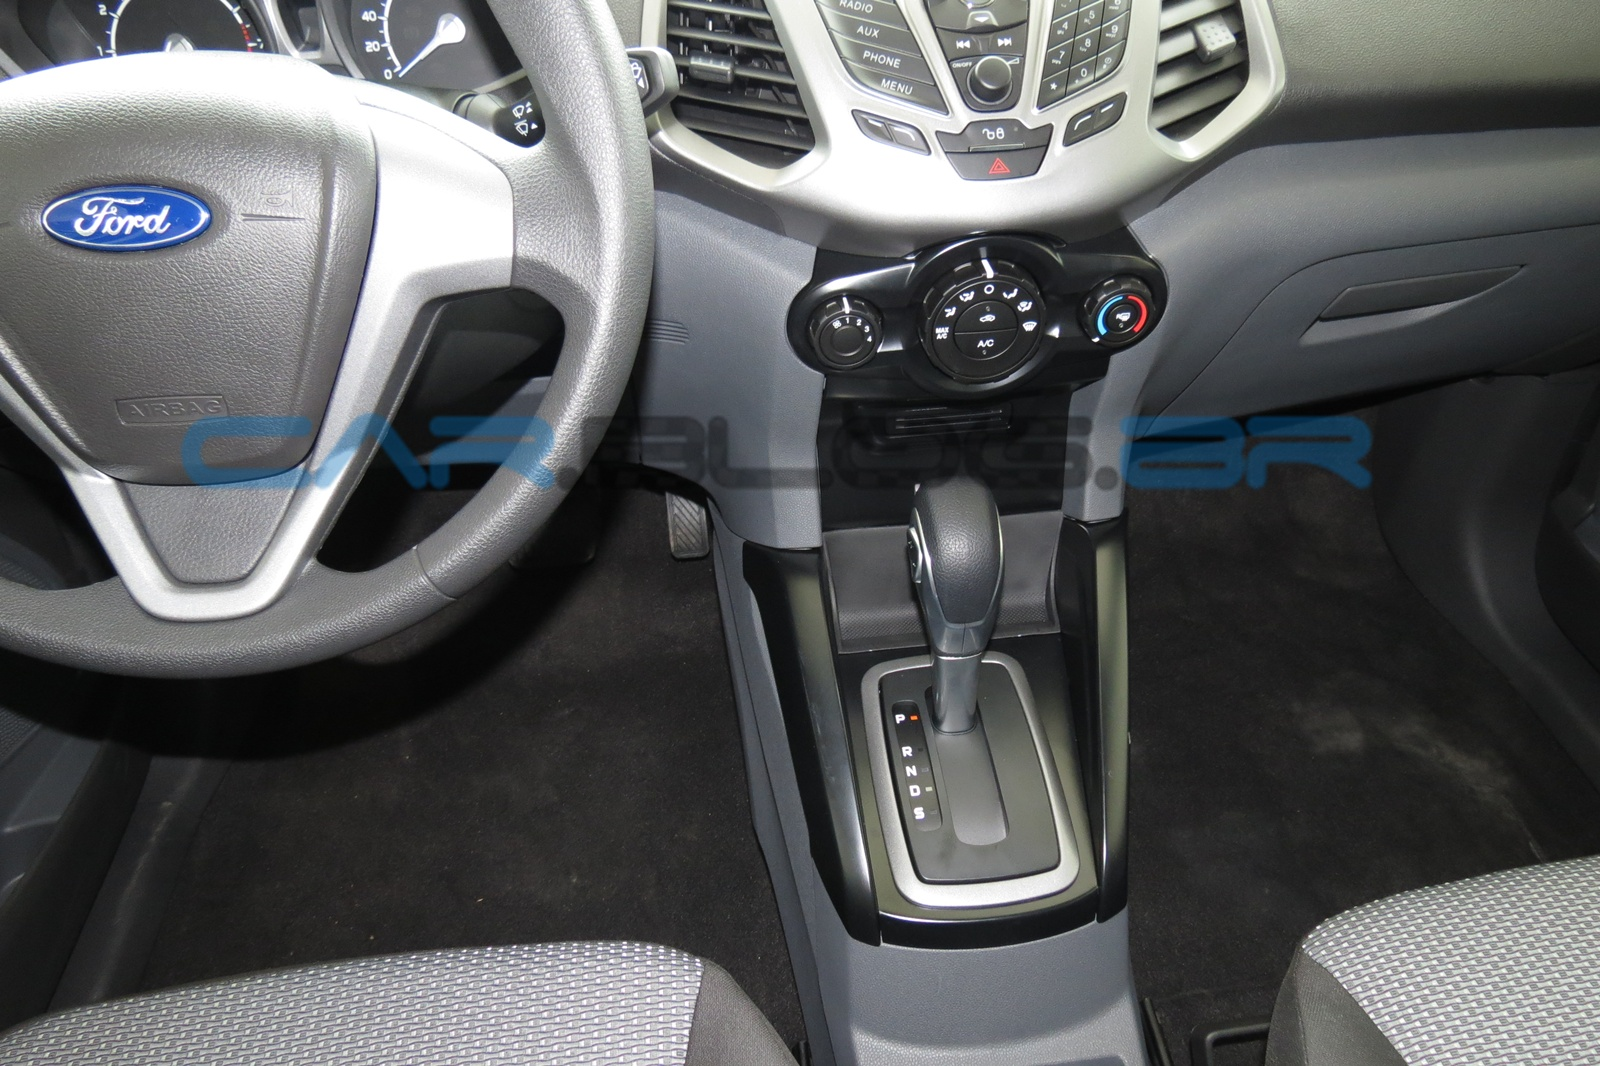 ford ecosport quatro rodas html with Ecosport Freestyle 2015 Powershift 20 on 2018 Hyundai Creta also 24515 besides Ford Ka Problemas No Motor Freios E further Tucson 2014  parativos as well Ecosport Freestyle 2015 Powershift 20.